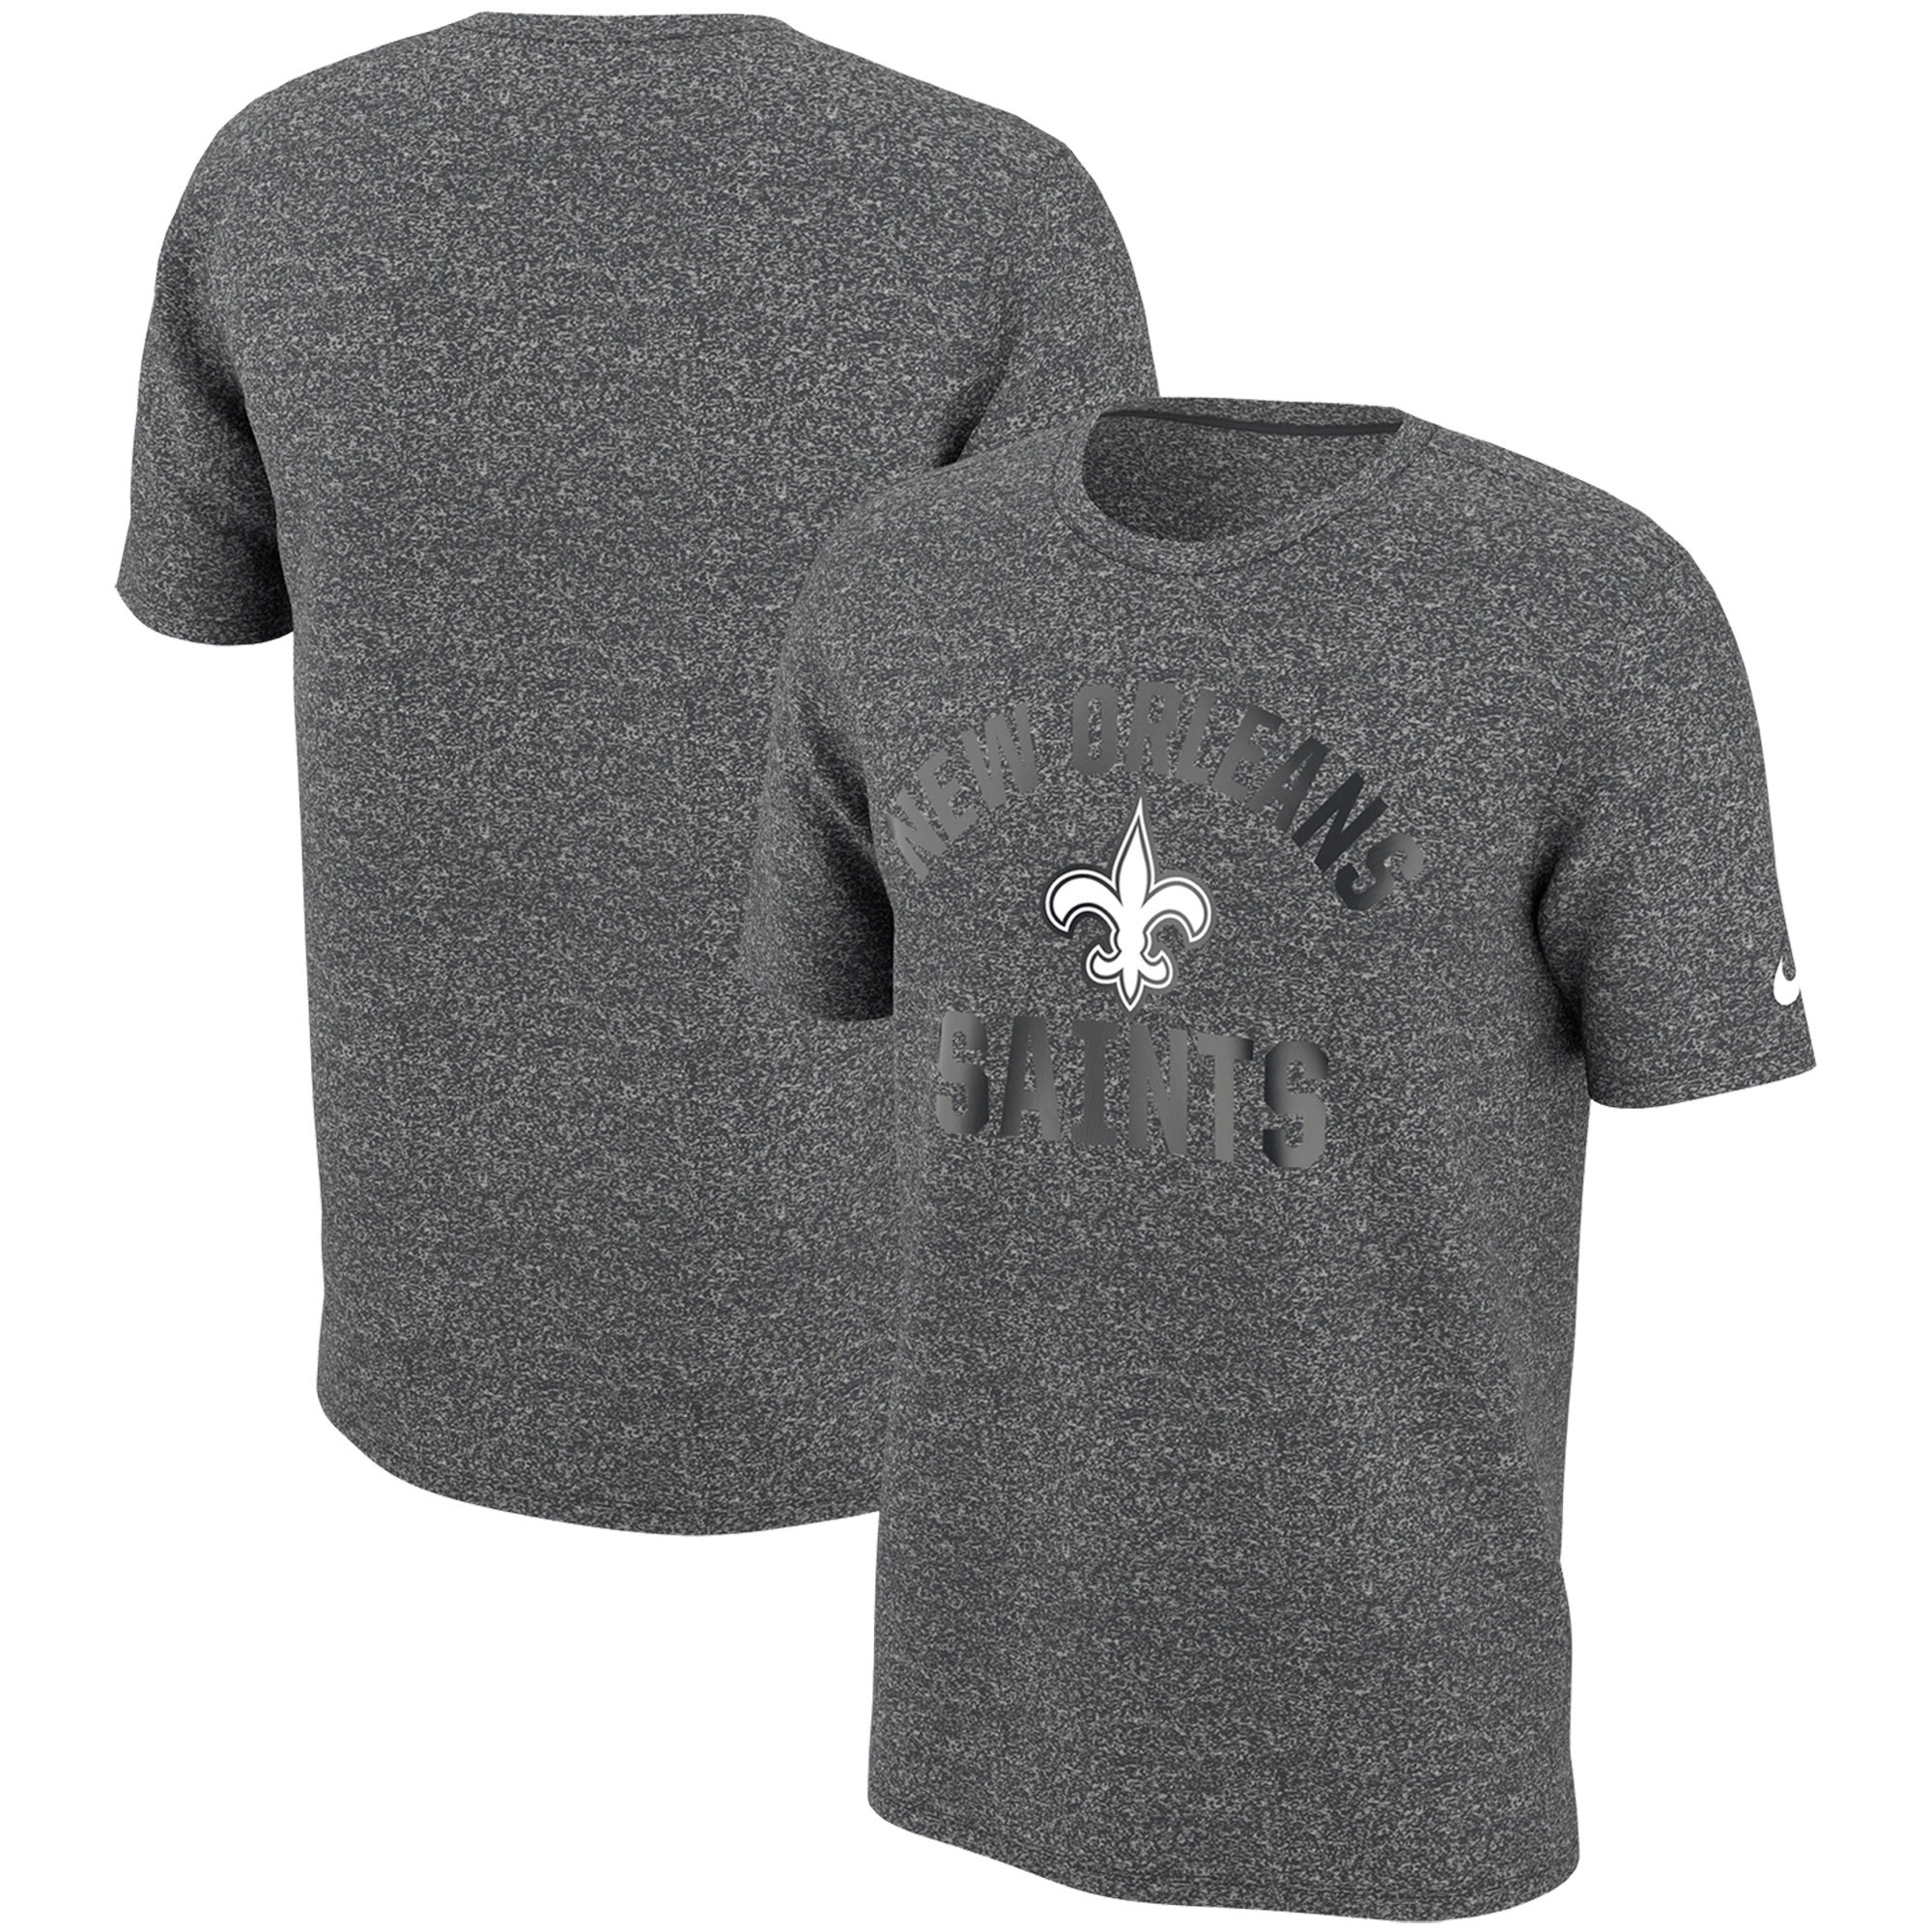 New Orleans Saints Nike Marled Gym Reflective Arch T-Shirt - Heathered Charcoal